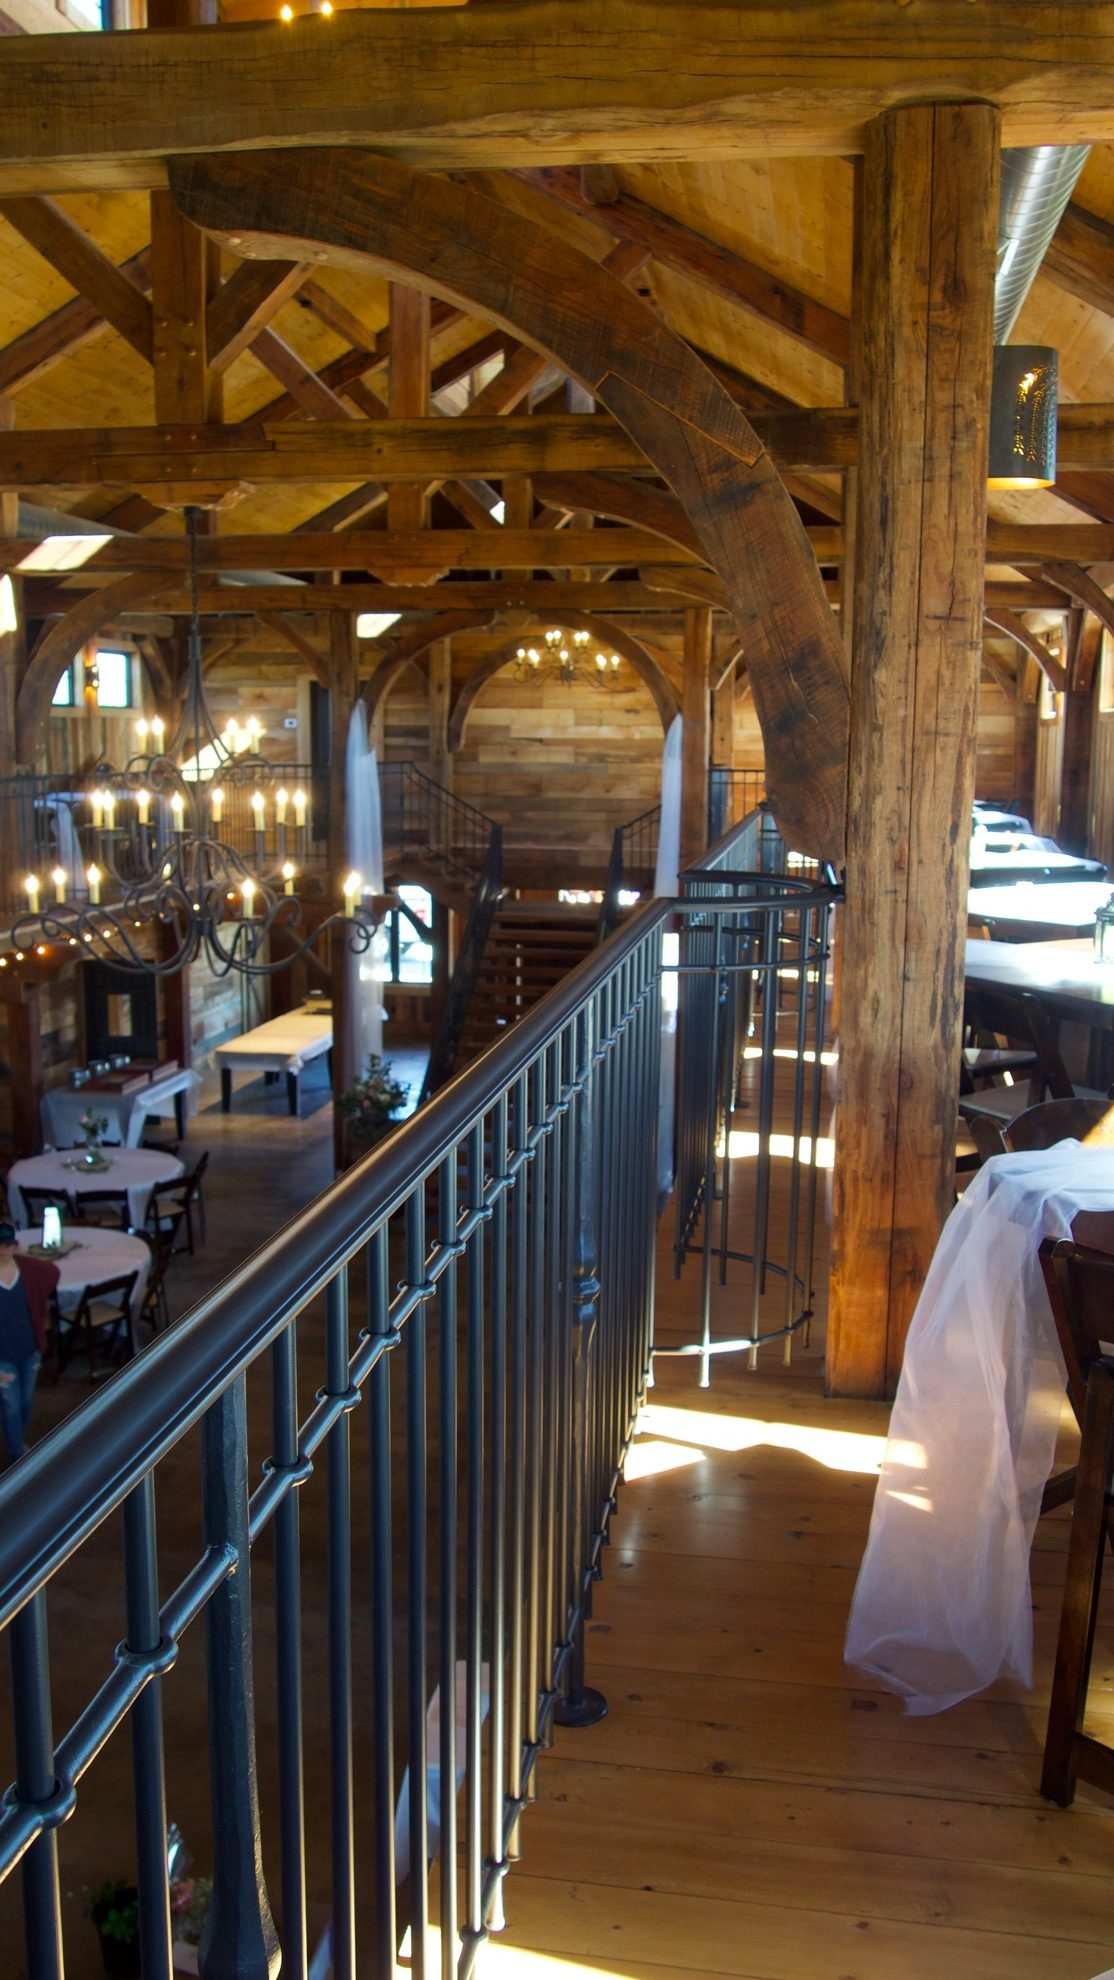 Photo of wedding barn looking down from a balcony.